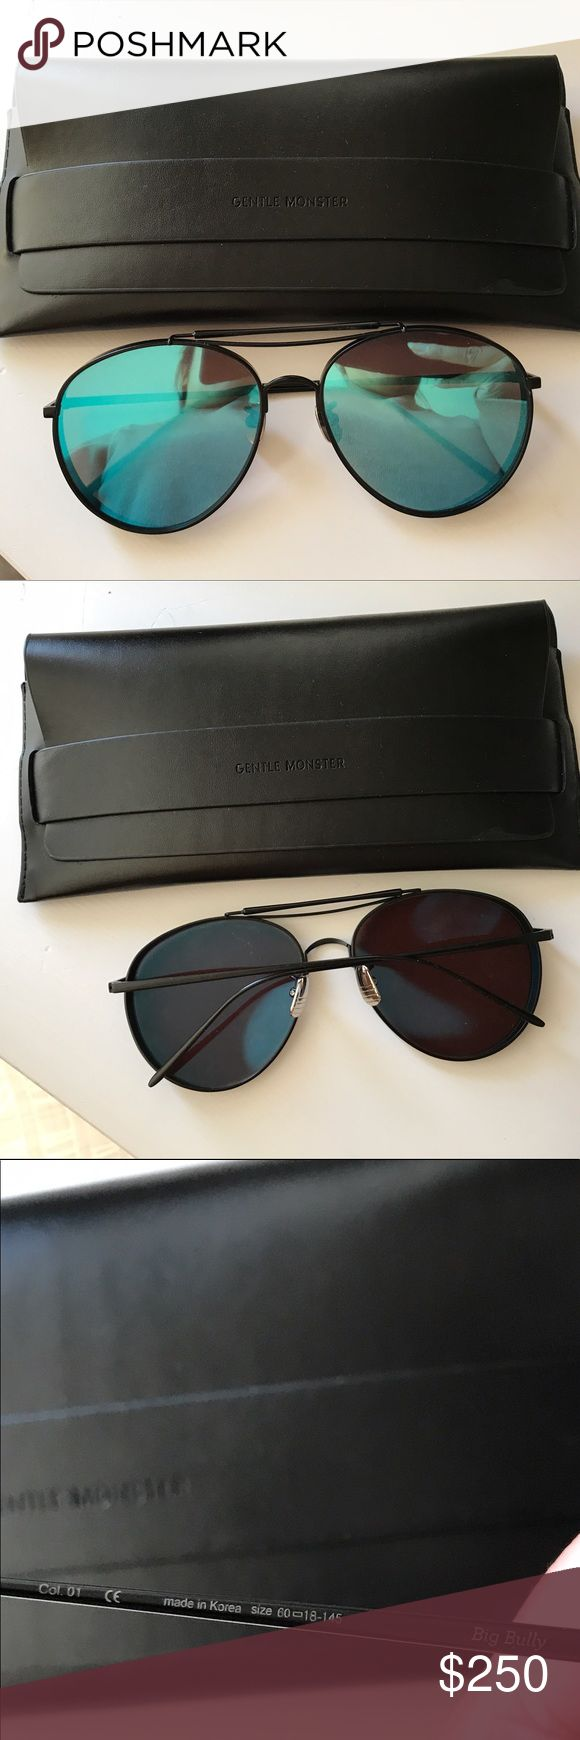 🛍🎉Gentle Monster Big Bully Sunglasses 🛍🎉Gentle Monster Big Bully Sunglasses. Blue reflective lens   ♡ Pre-loved. Excellent Condition. Worn ONCE! ✖️No Trades ☆ Authentic 。◕‿◕。 βundle and Save! gentle monster Accessories Sunglasses